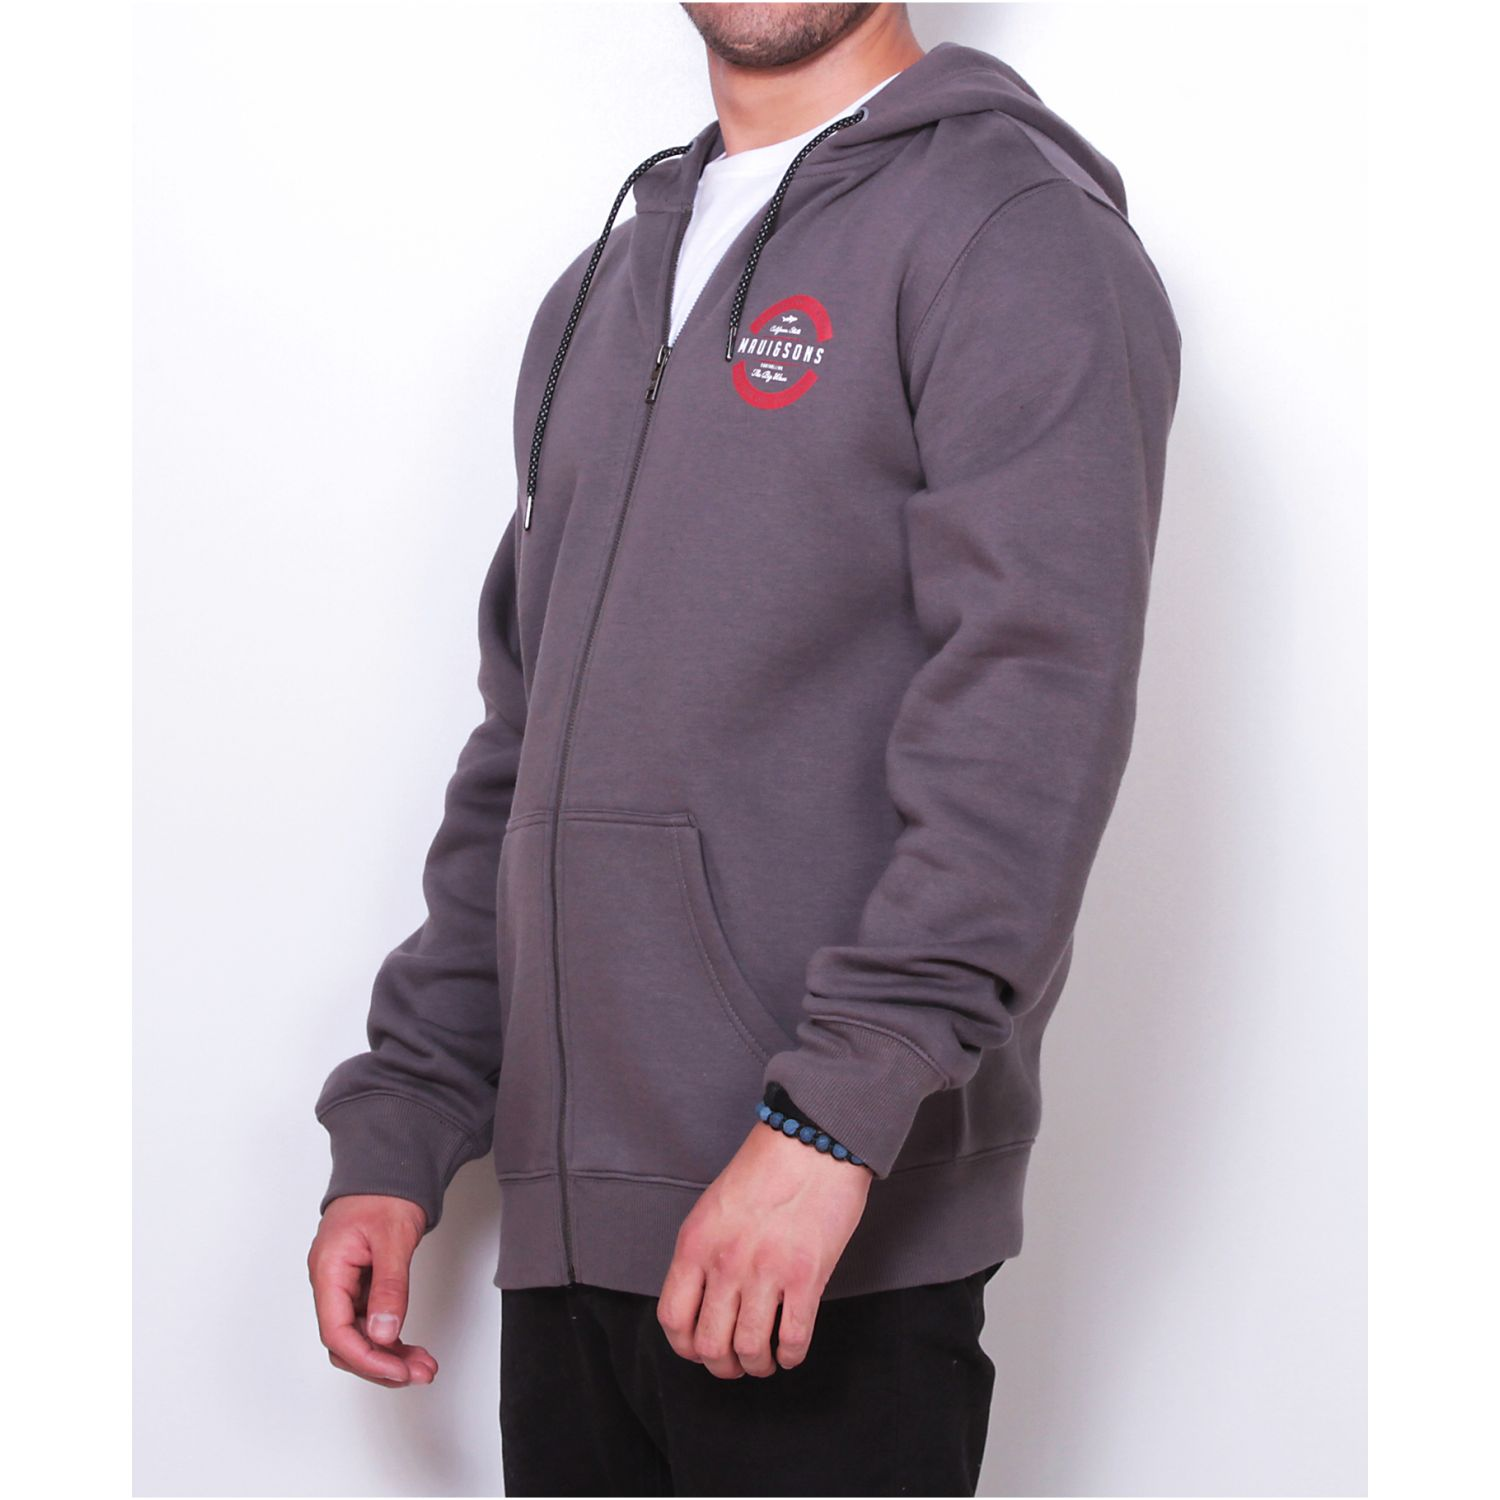 MAUI AND SONS POLERON 5O210-MI19 FZIP LISO Plomo Hoodies y Sweaters Fashion